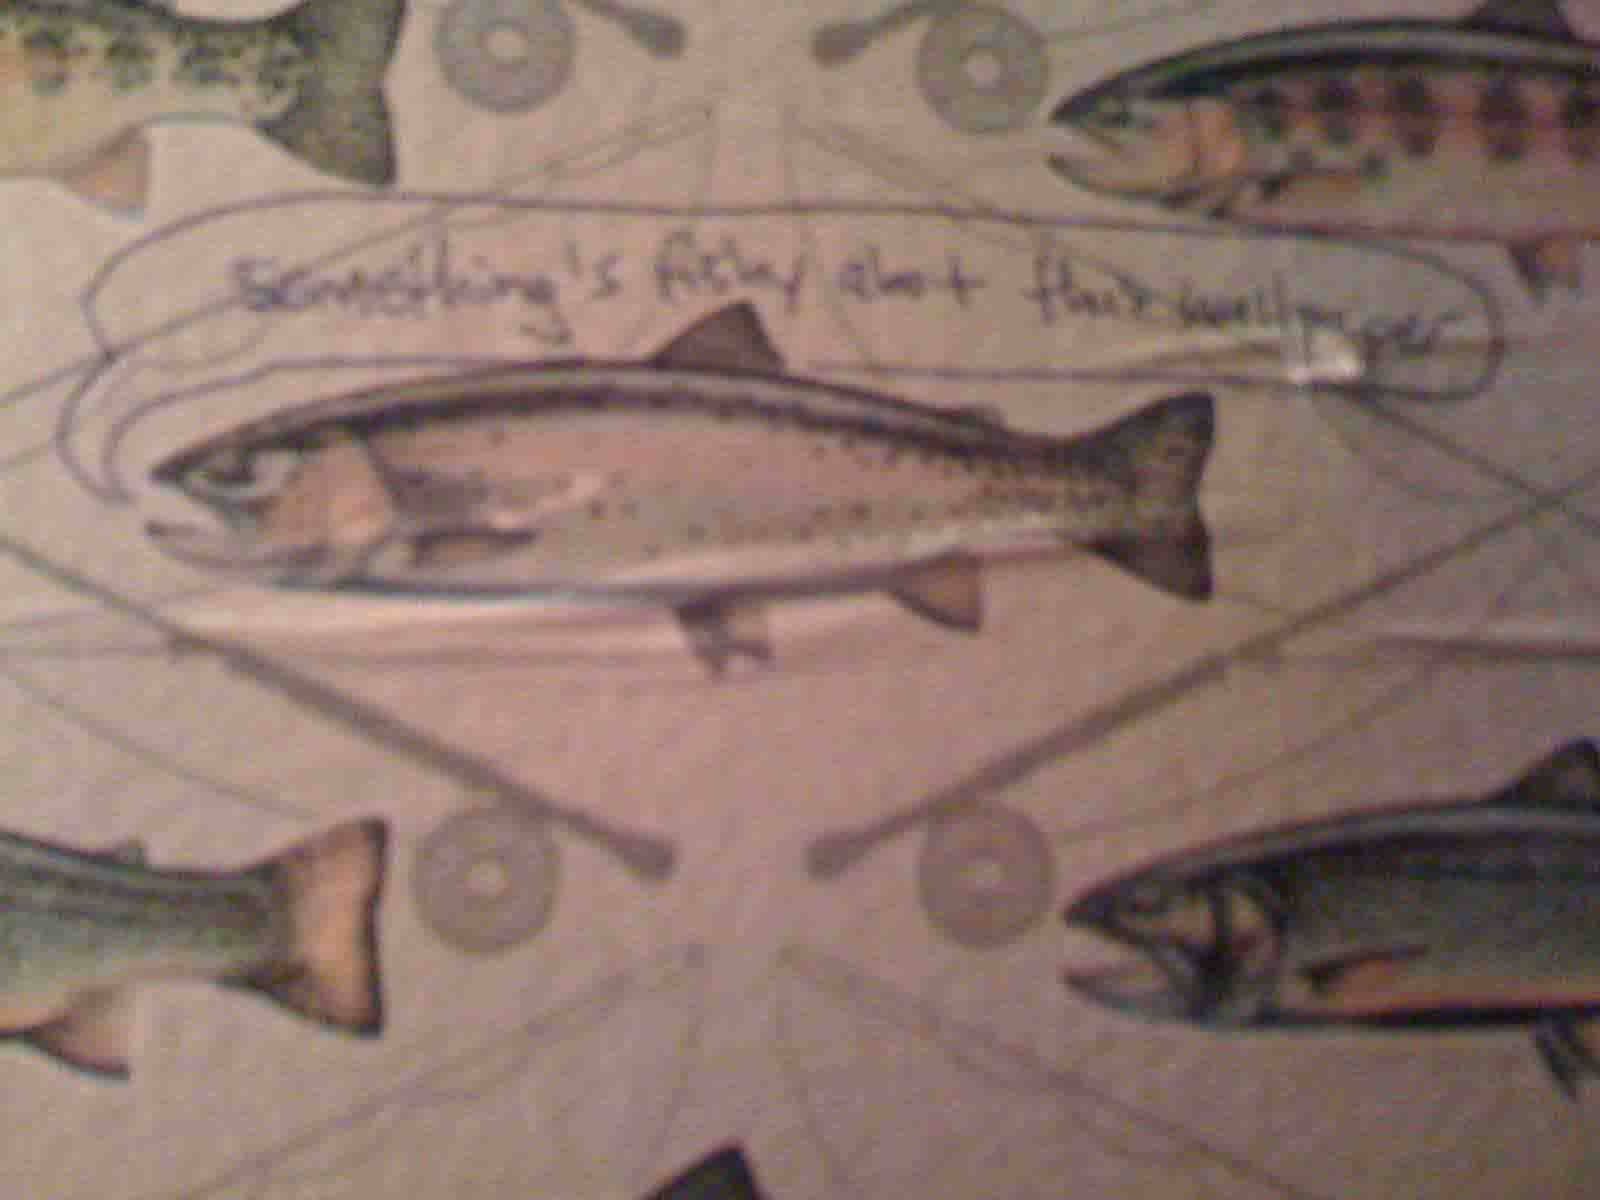 NYC - The Spotted Pig - something's fishy about this wallpaper